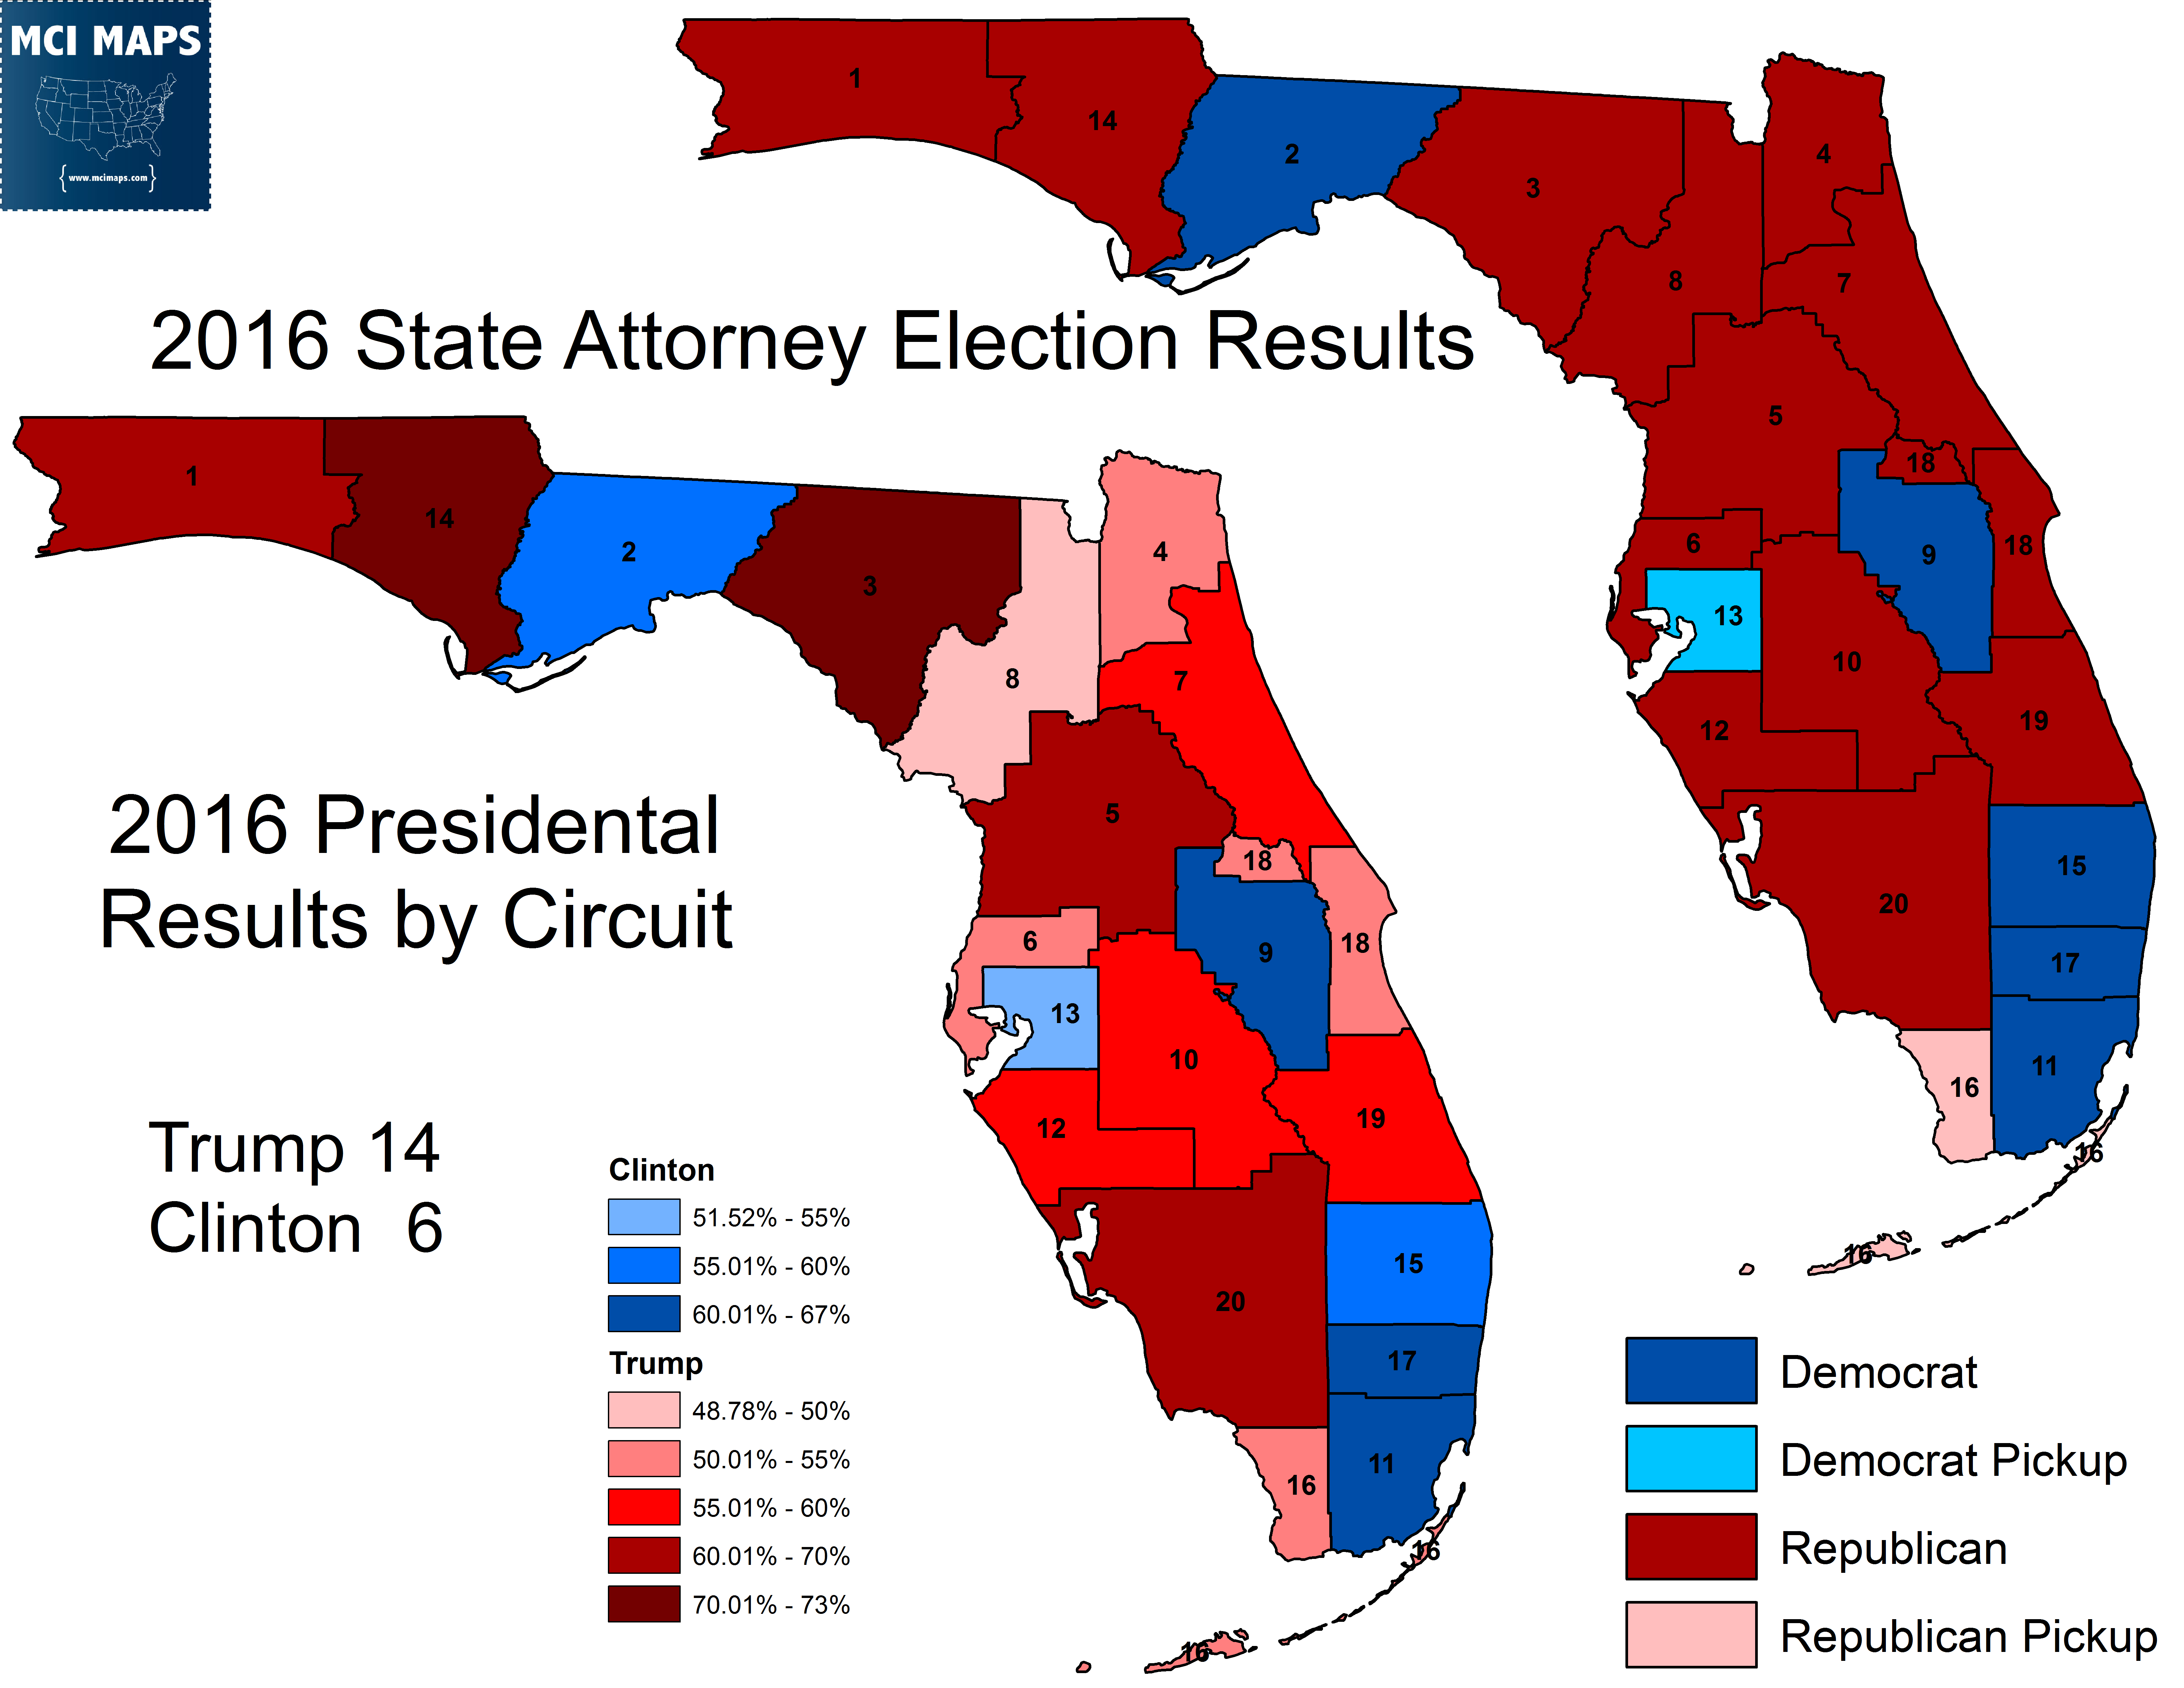 democrats are at a structural disadvantage here no county can be split by a circuit so places like broward or dade can only have 1 circuit each